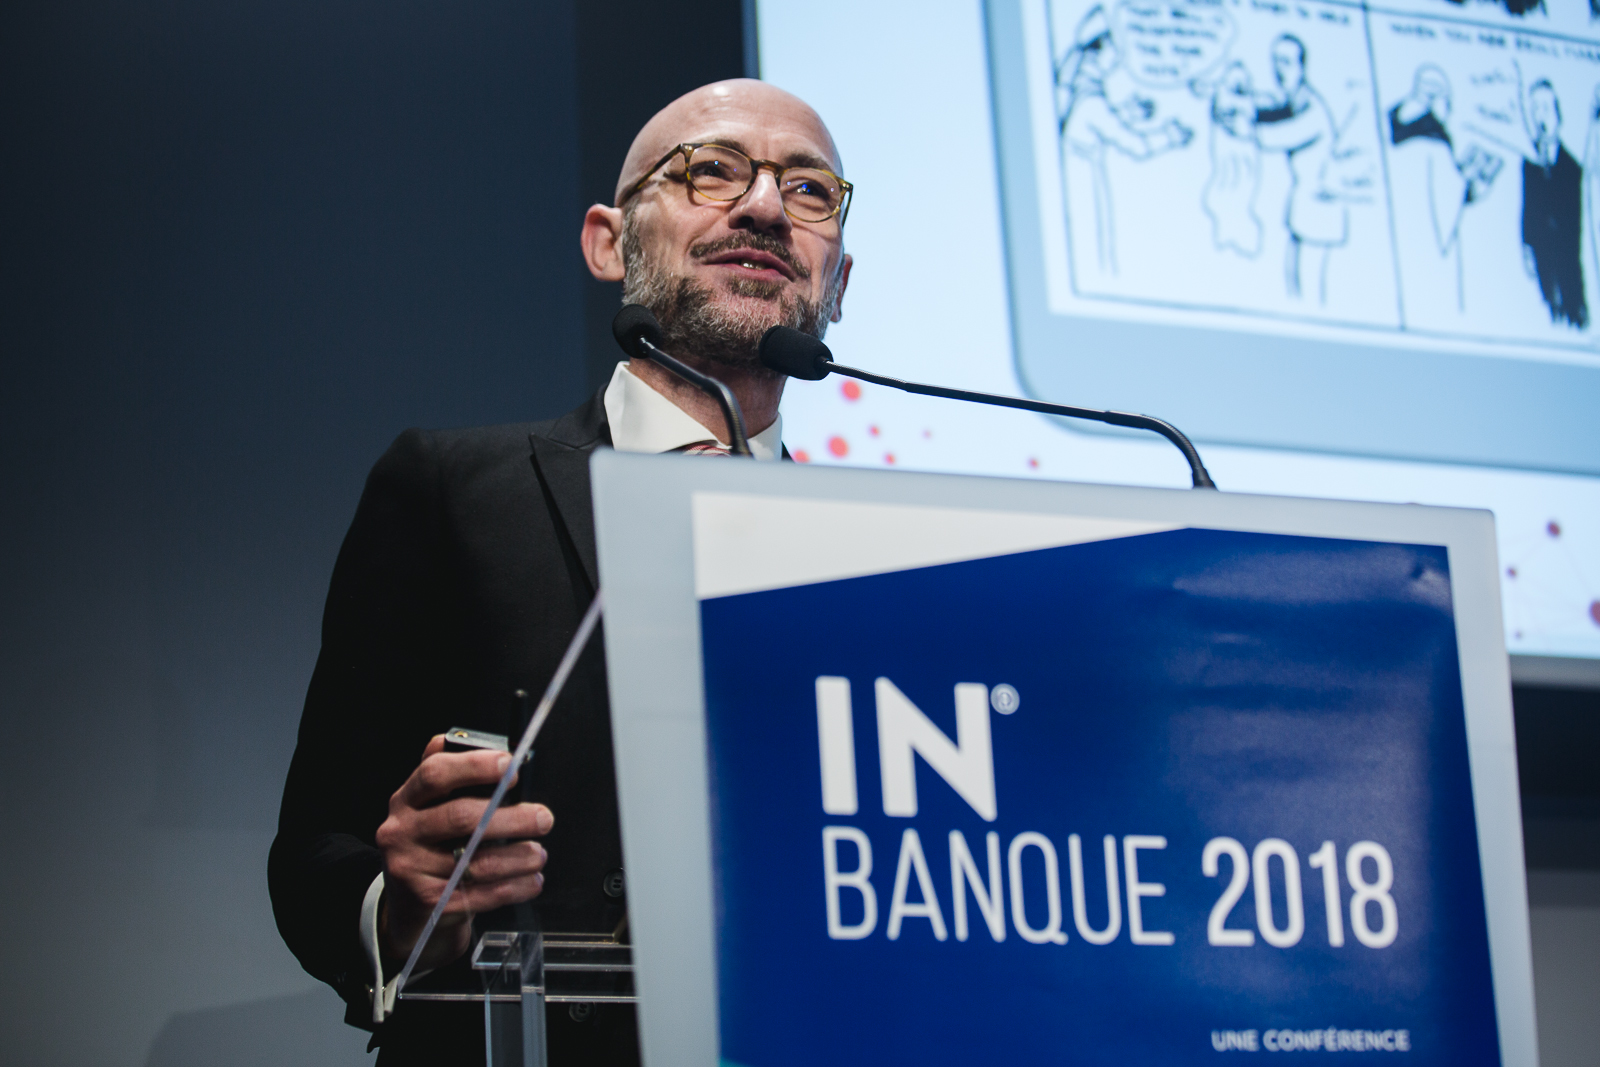 Philippe-Quentin Real (CGI Business Consulting) - IN BANQUE 2018 - Crédit photo : Guillermo Gomez